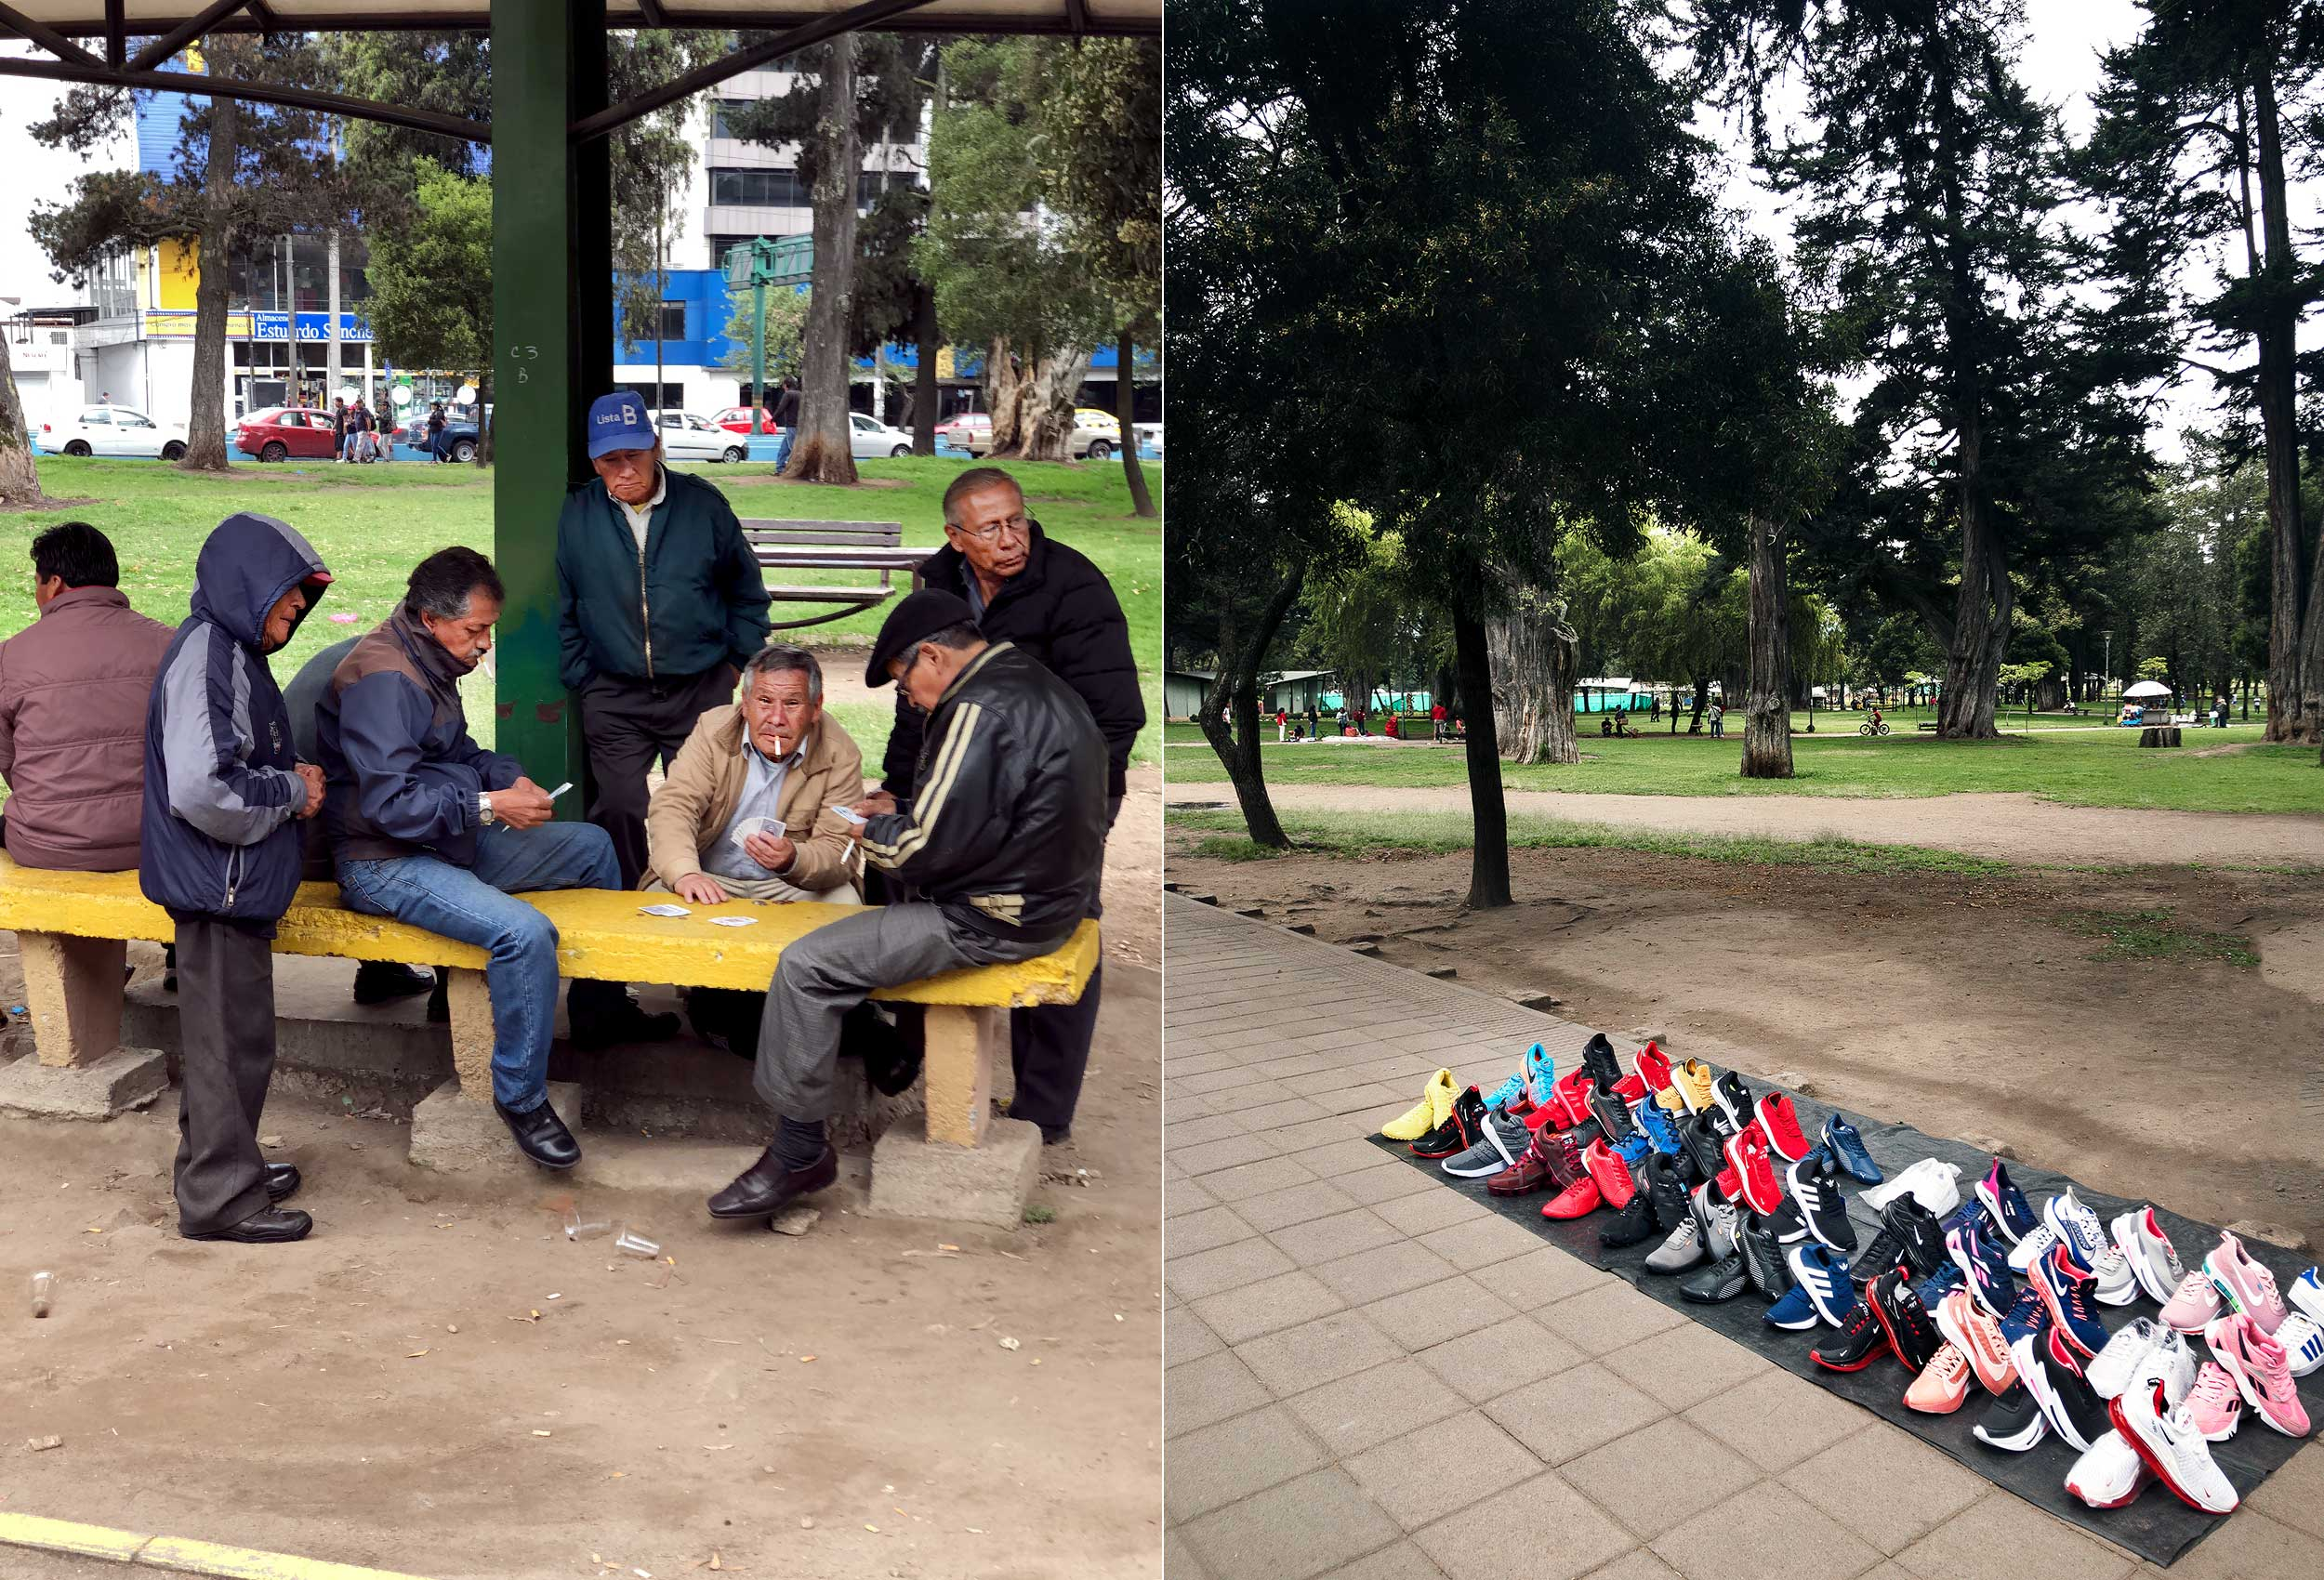 gamblers-playing-cards-in-a-quito-ecuador-park